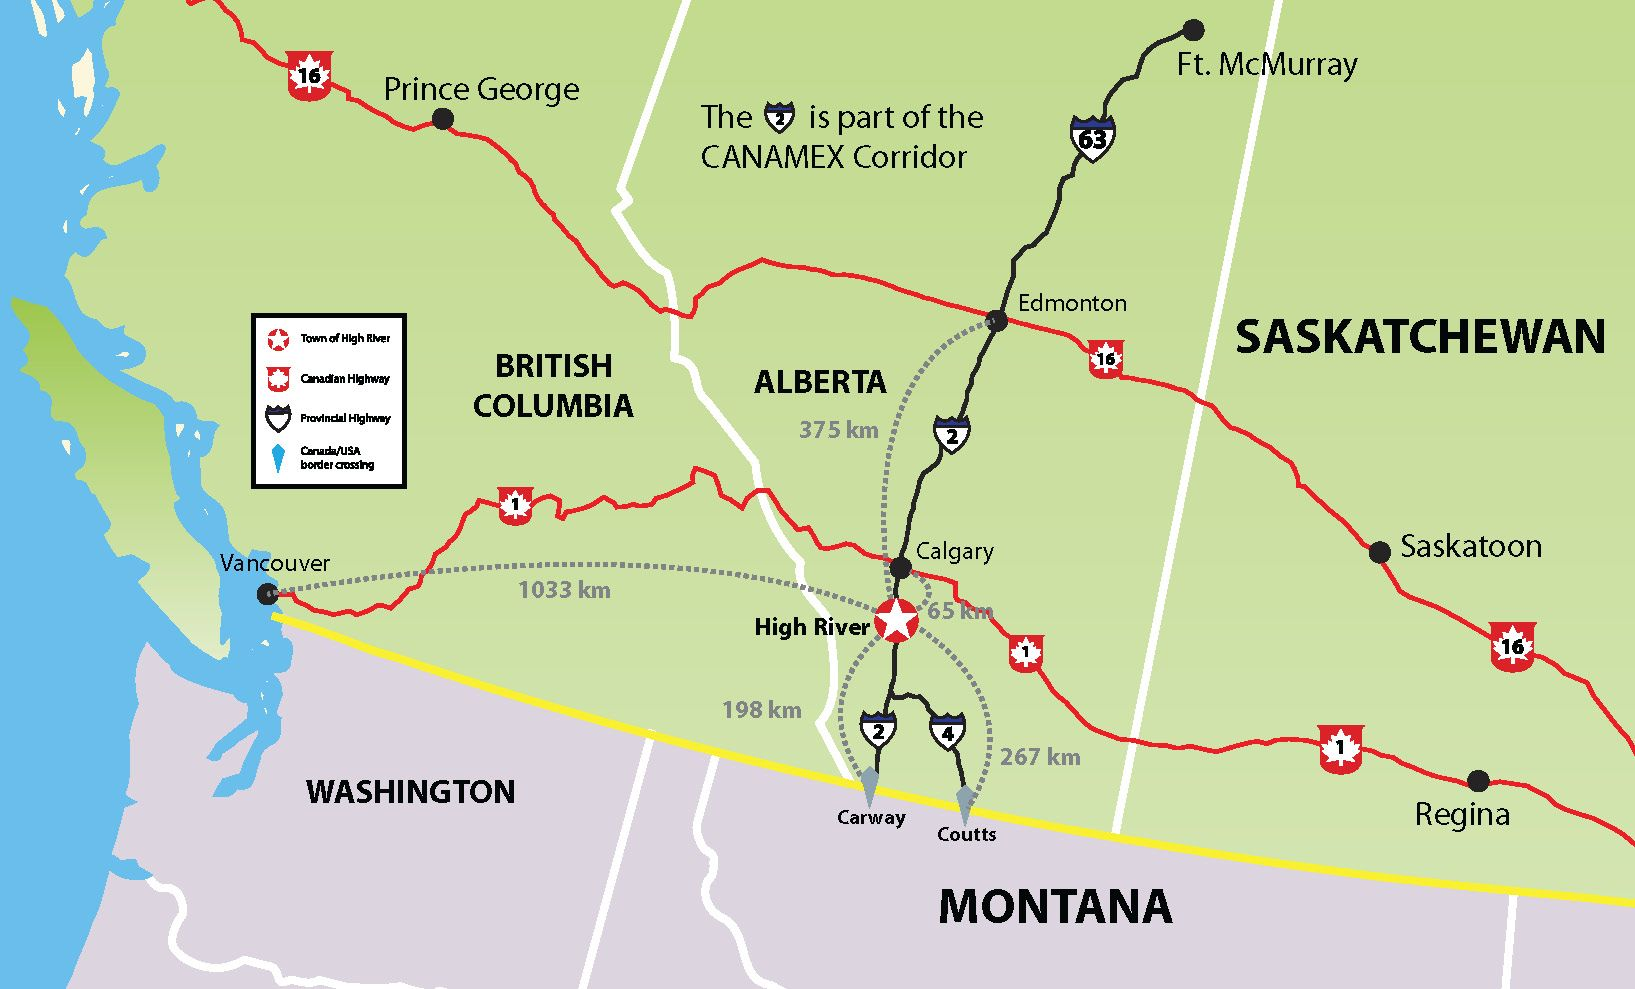 High River Alberta Canadas location in North America junket